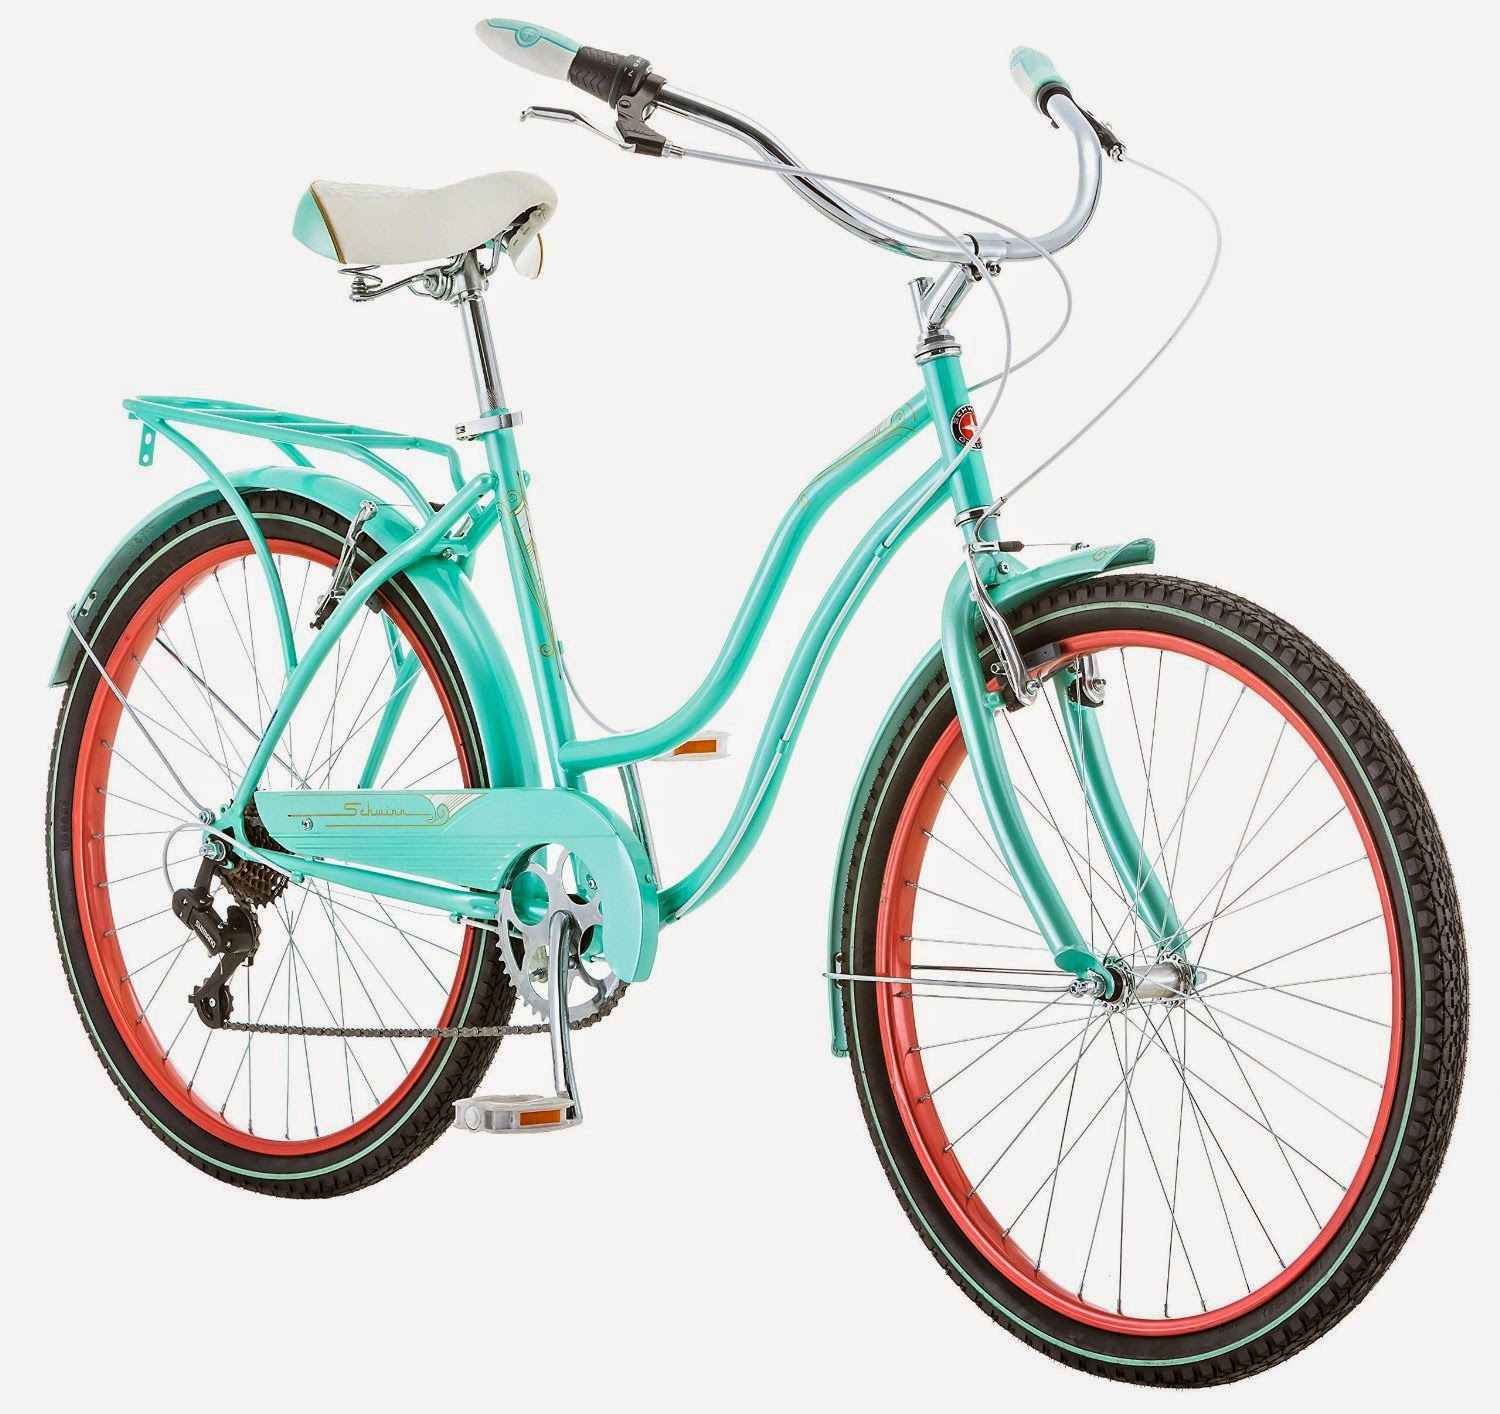 "Schwinn Perla 7 Speed Women's 16 Cruiser Bike, 16""/Small, Blue, review, steel frame and fork, swept-back handlebars, 7 gears, alloy V brakes, padded spring saddle, full fenders, rear rack"